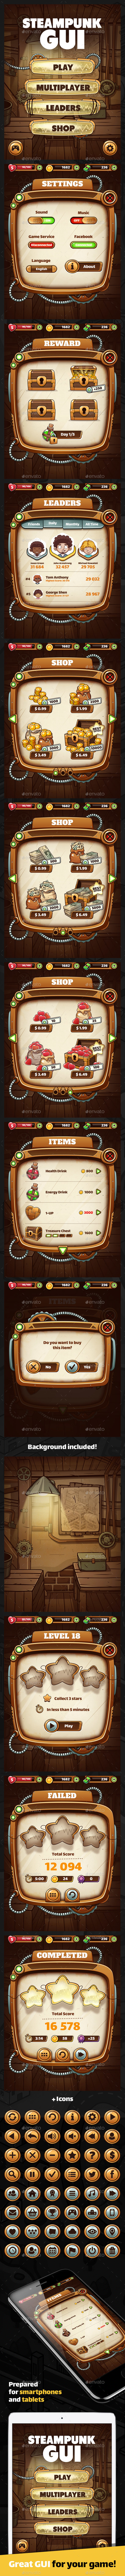 Steampunk Game GUI - User Interfaces Game Assets